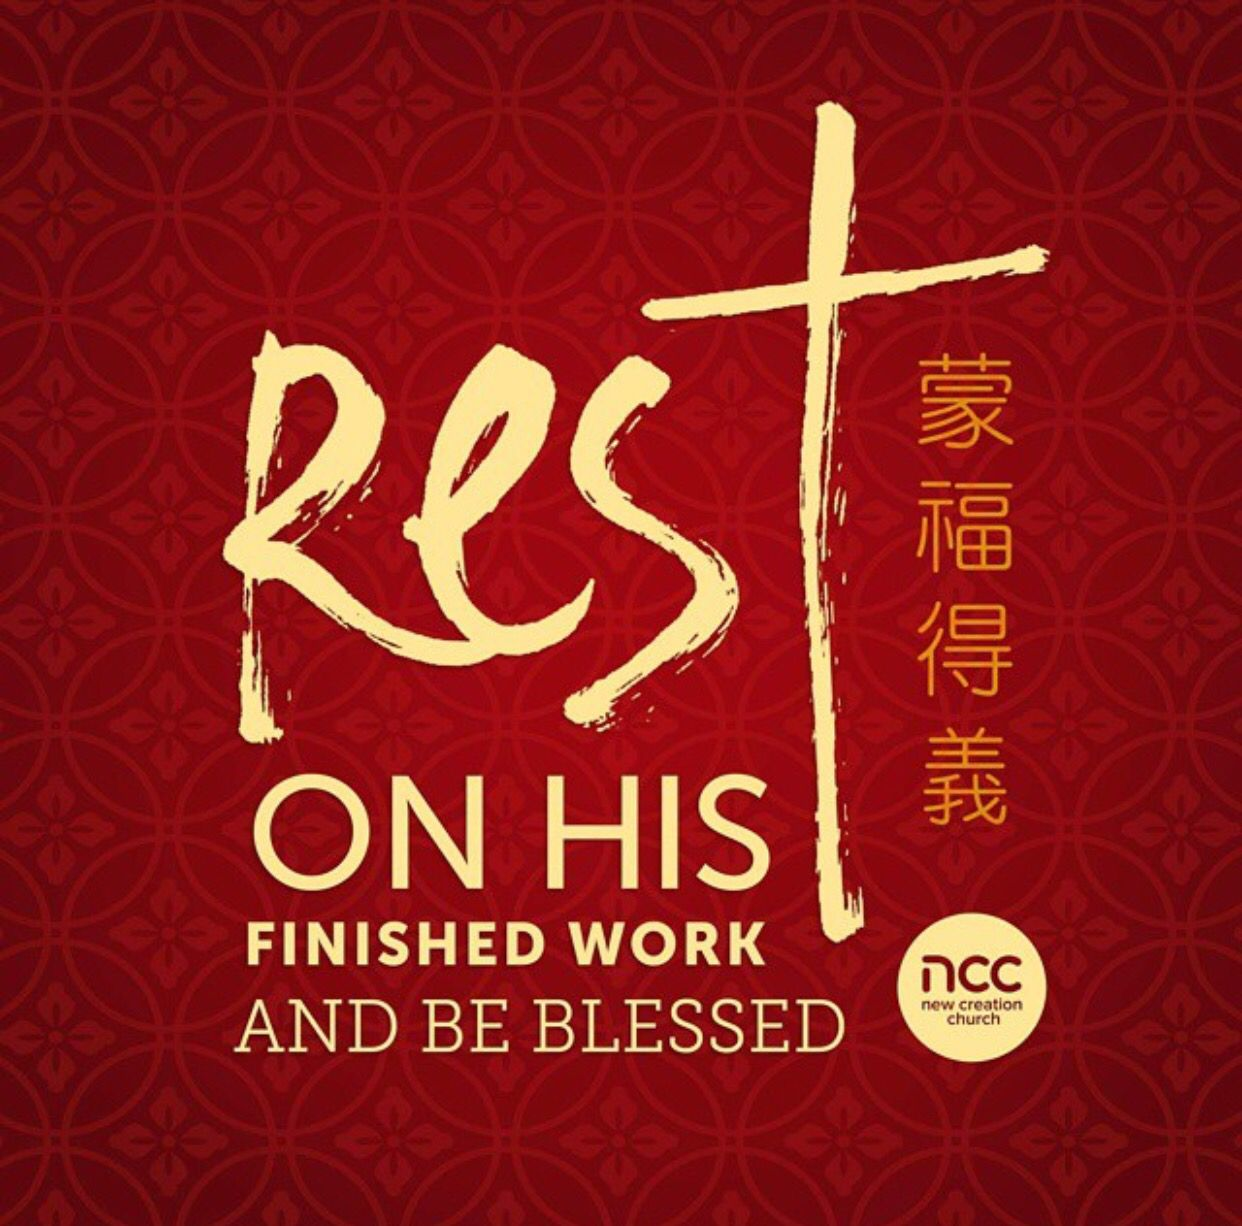 Rest is the key to His Restoration!